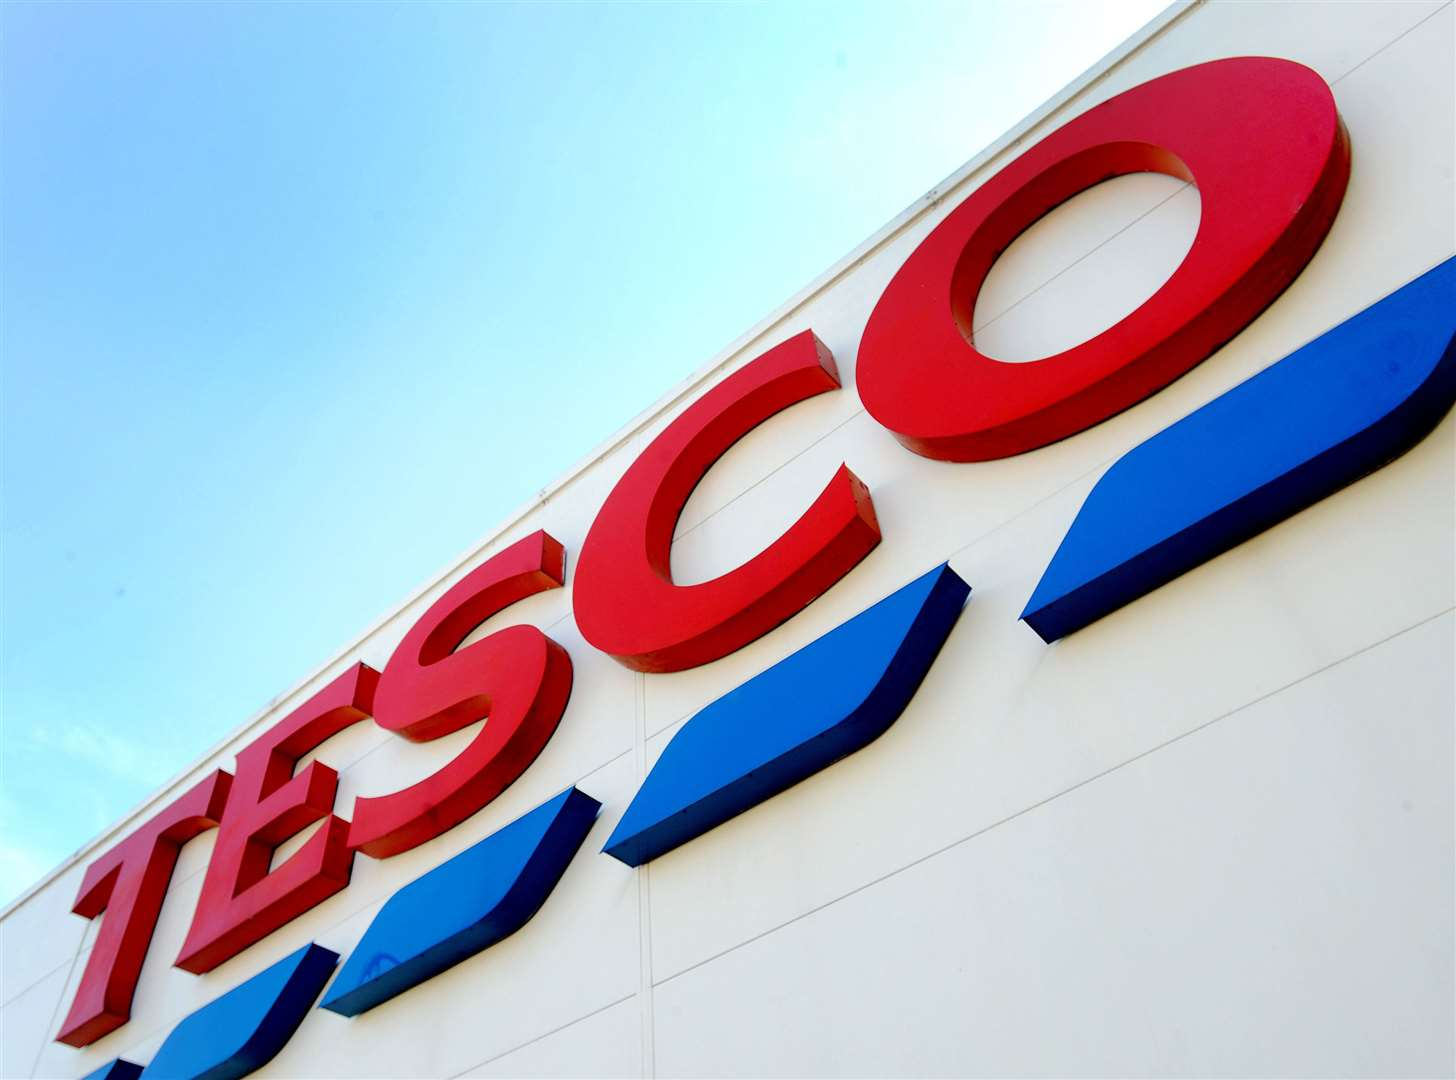 Tesco is planning to axe staff across its bakeries nationwide as part of a shake-up